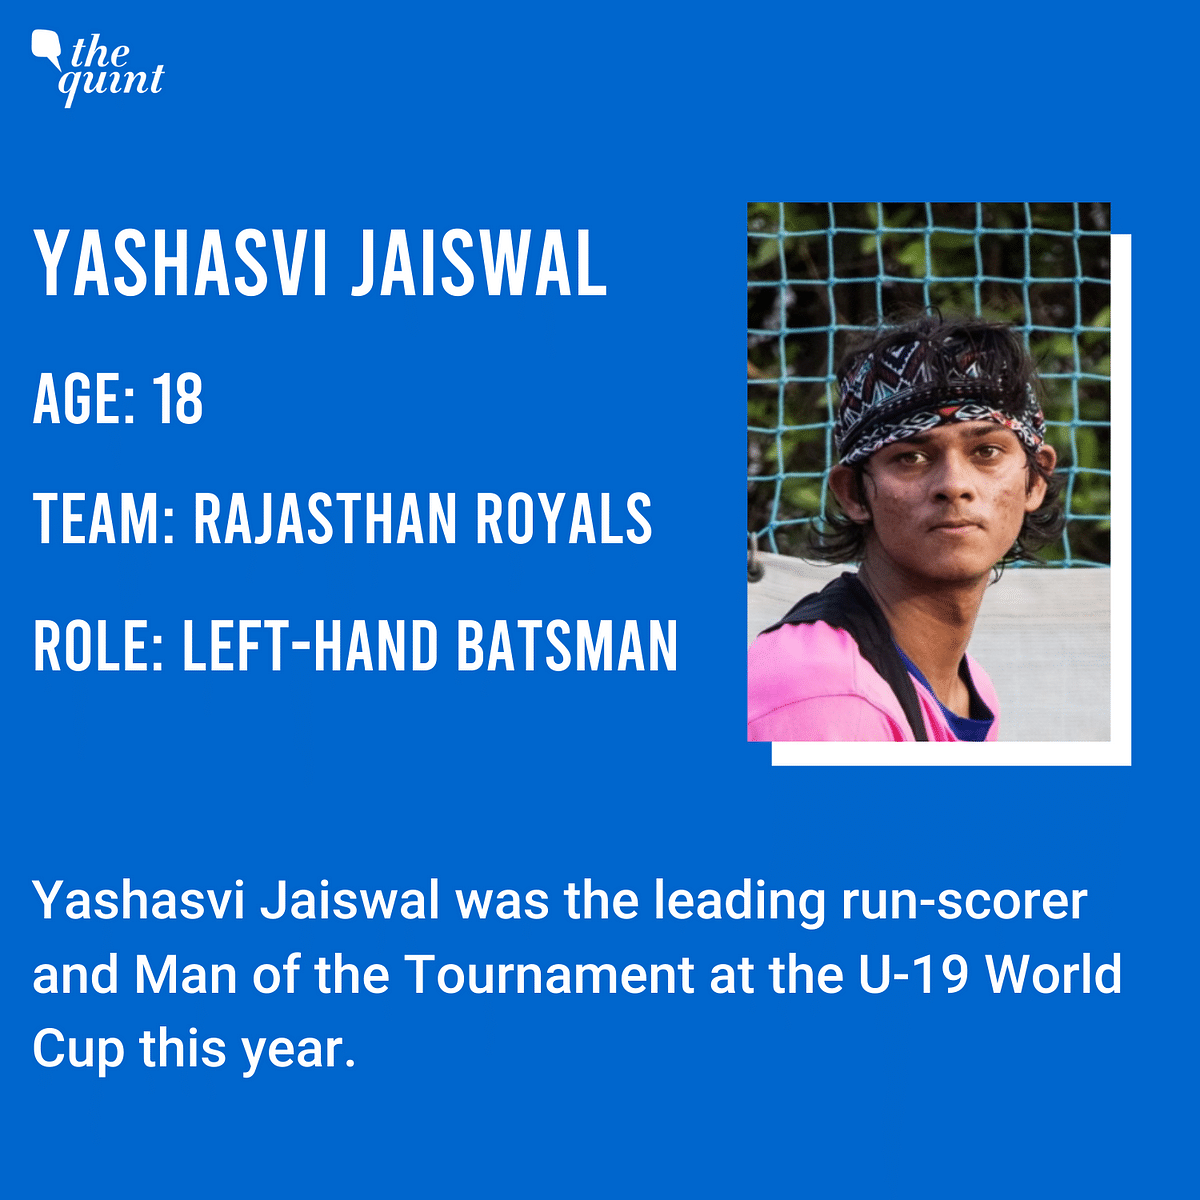 Yashasvi, Samad, Padikkal: 7 Youngsters to Watch Out for This IPL